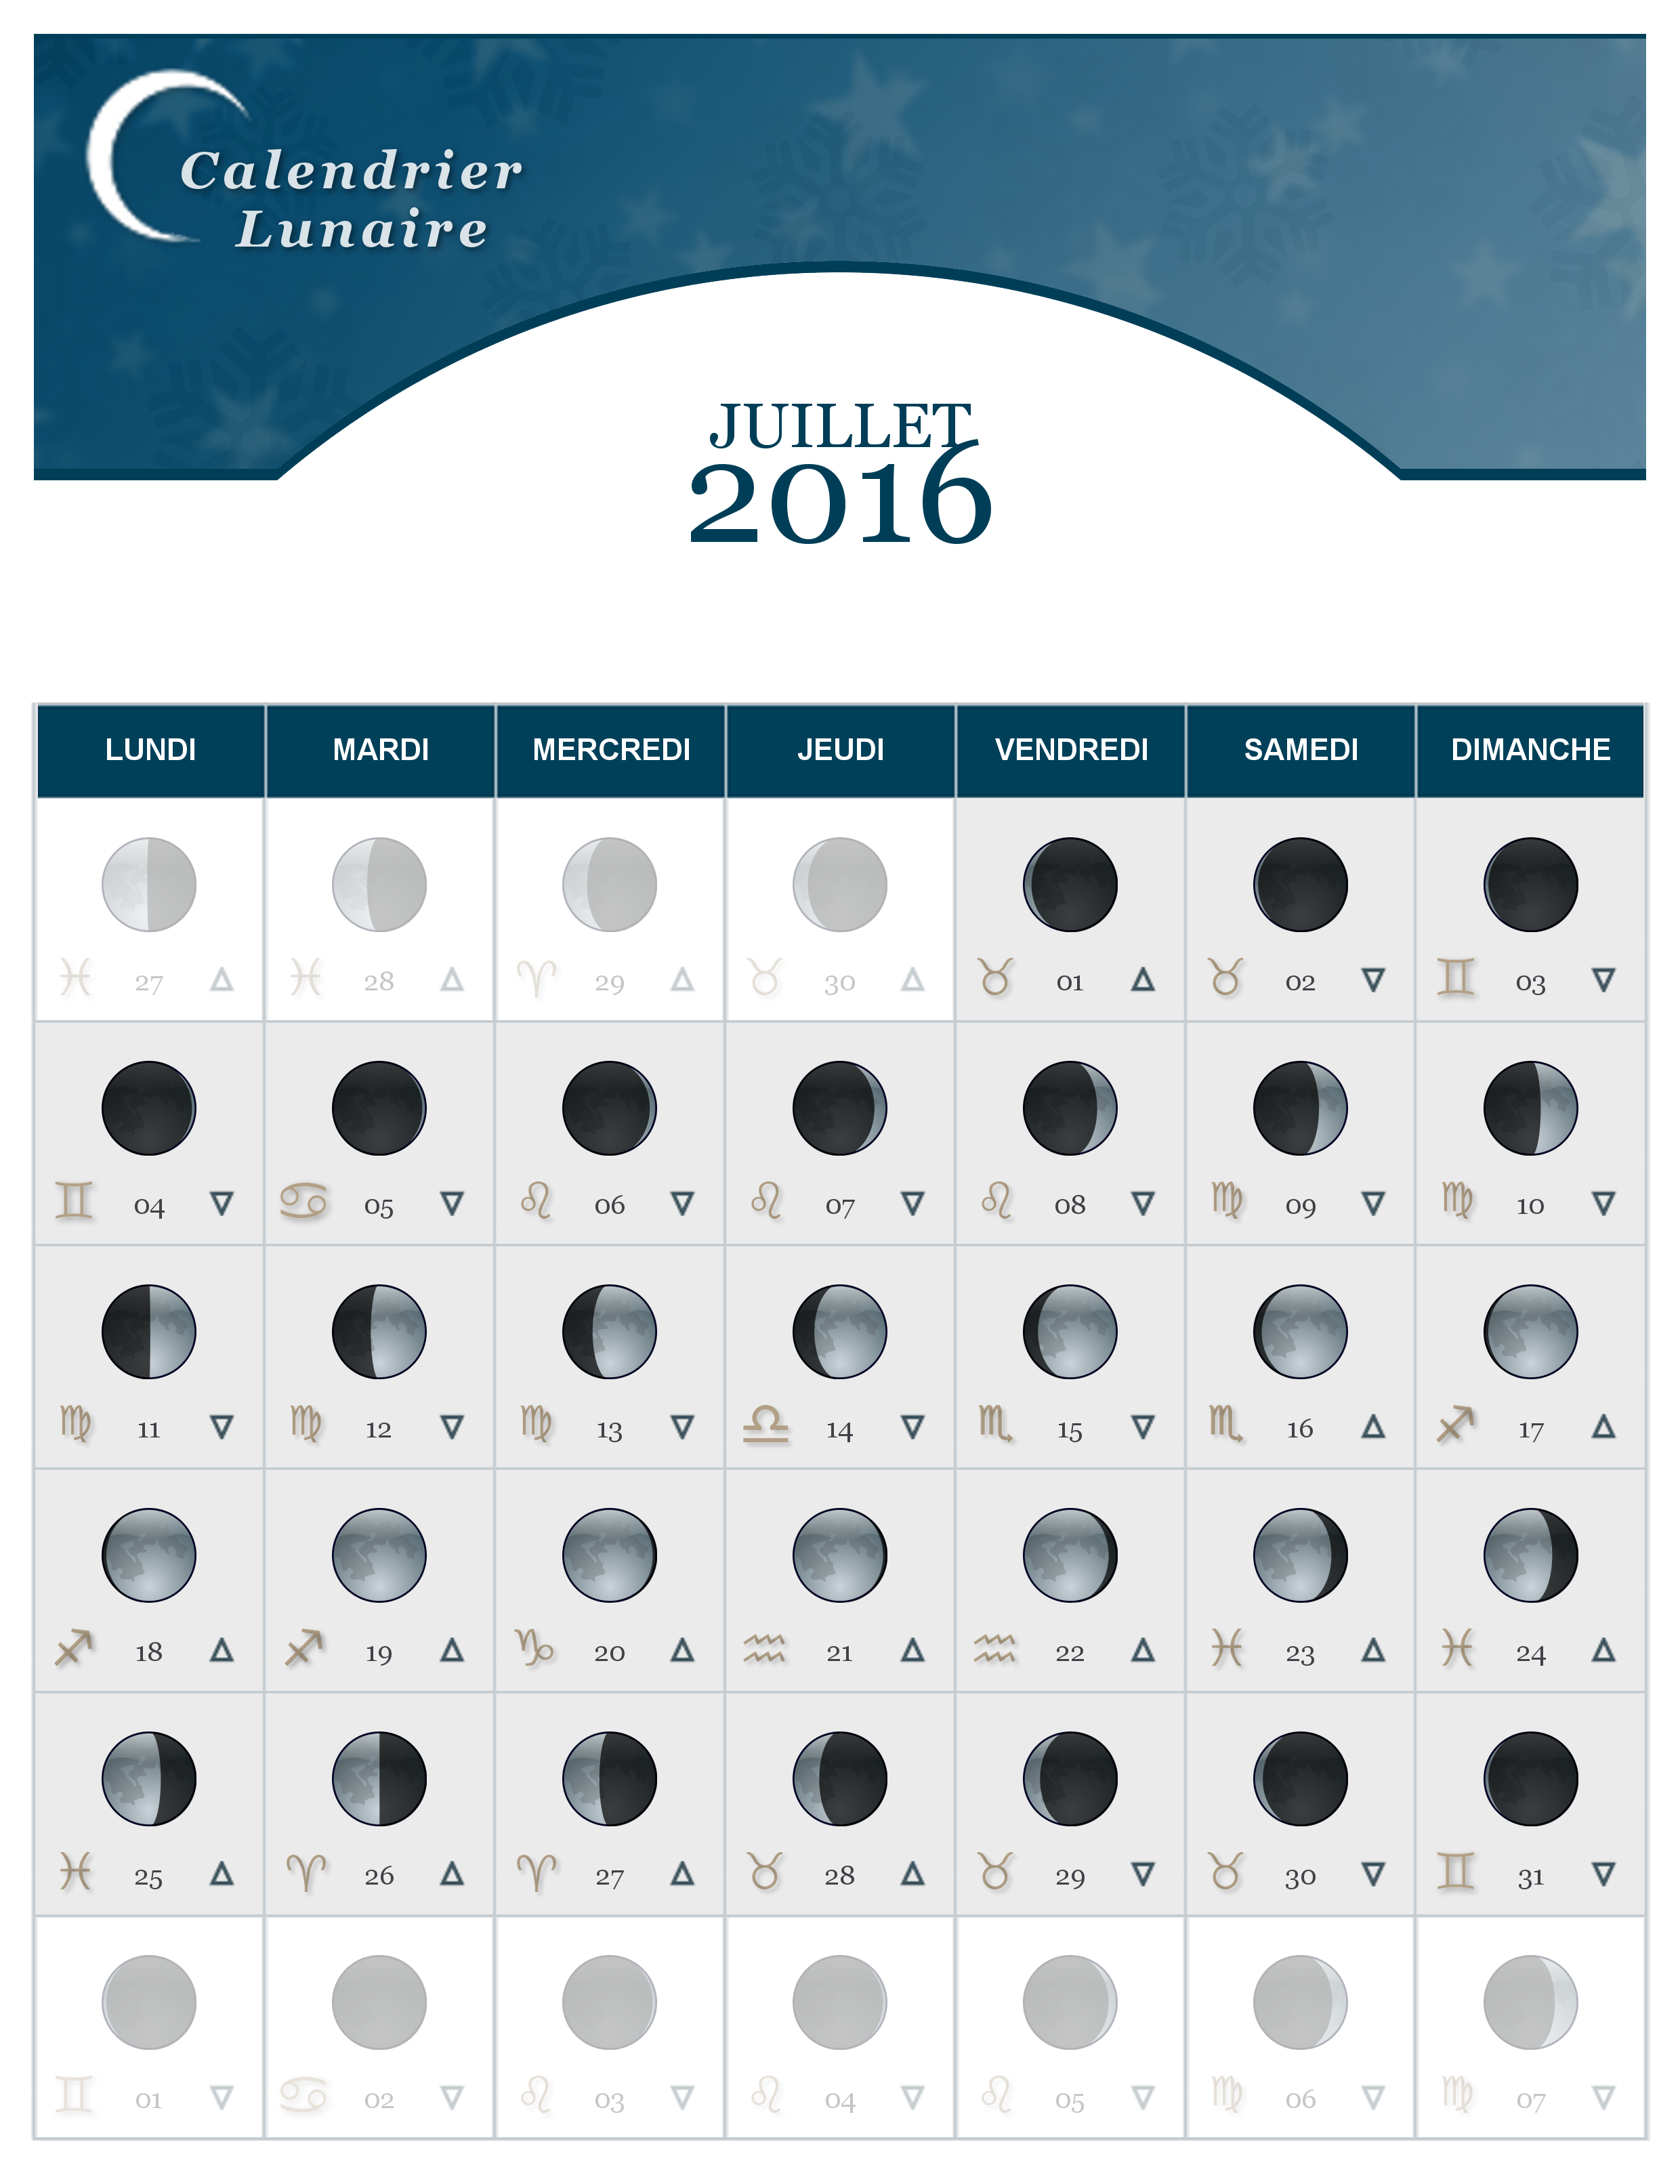 calendrier lunaire du mois de juillet 2016 the lucky cath concept. Black Bedroom Furniture Sets. Home Design Ideas